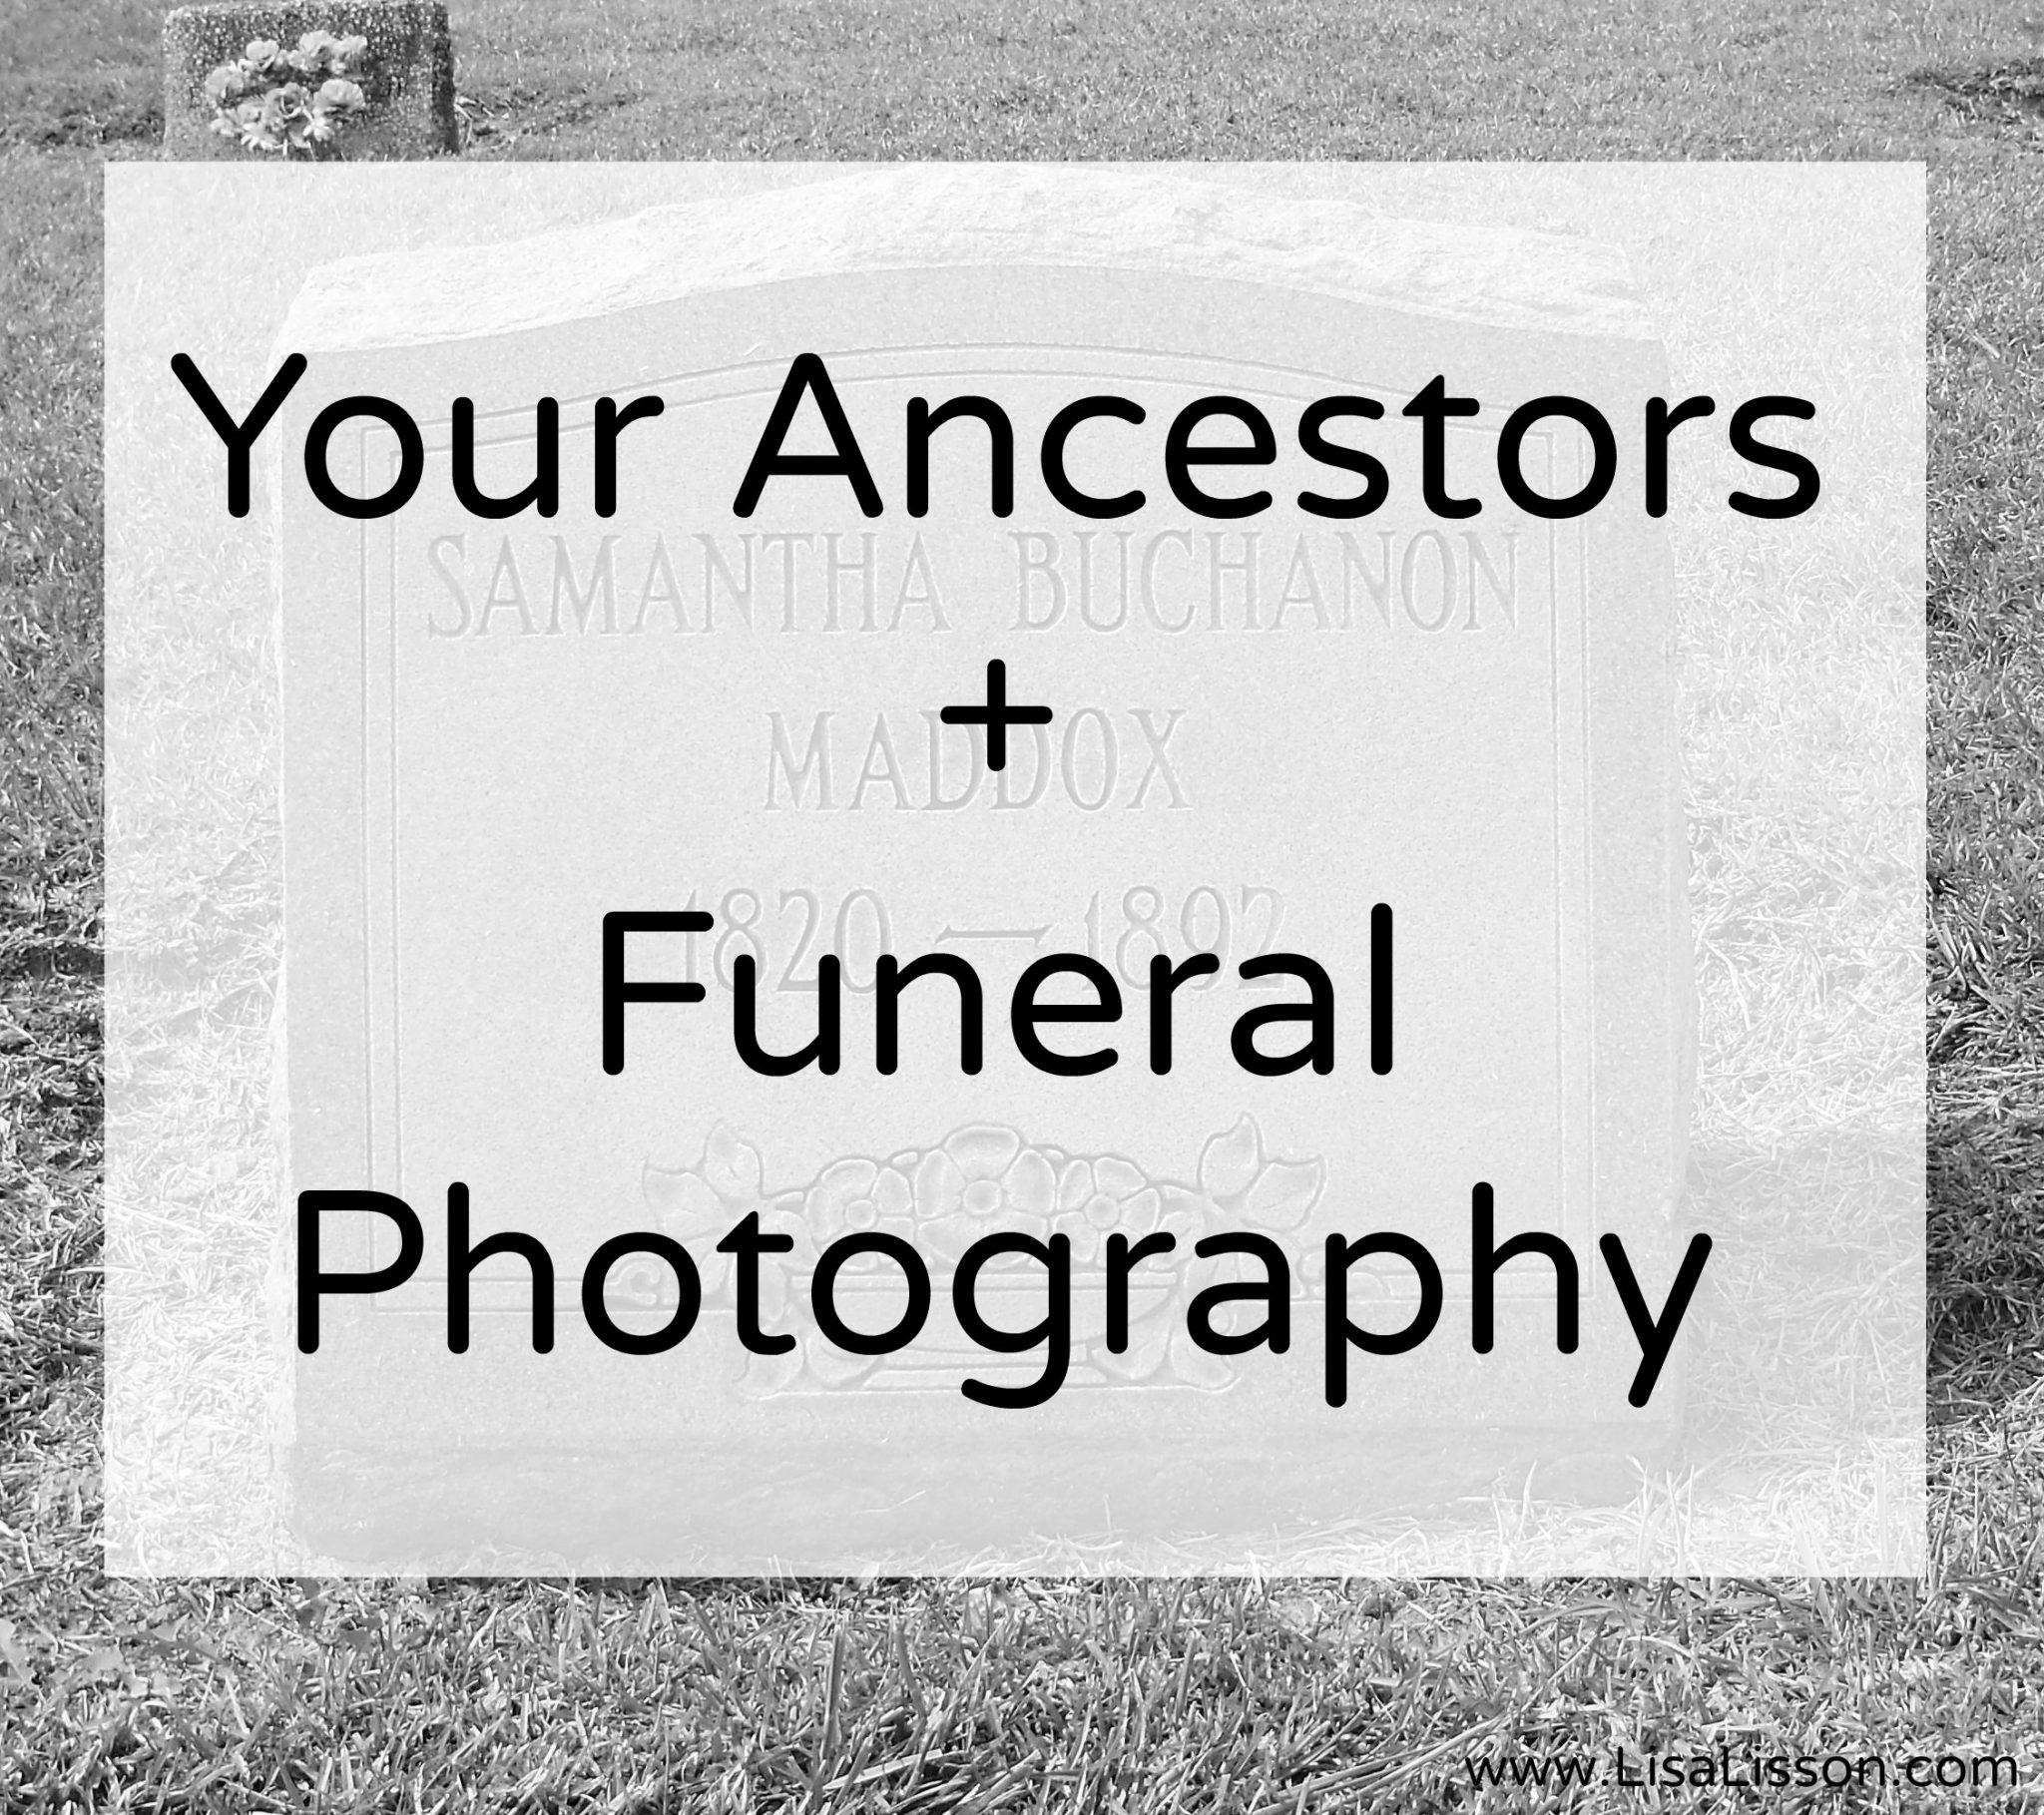 Your Ancestors + Funeral Photography